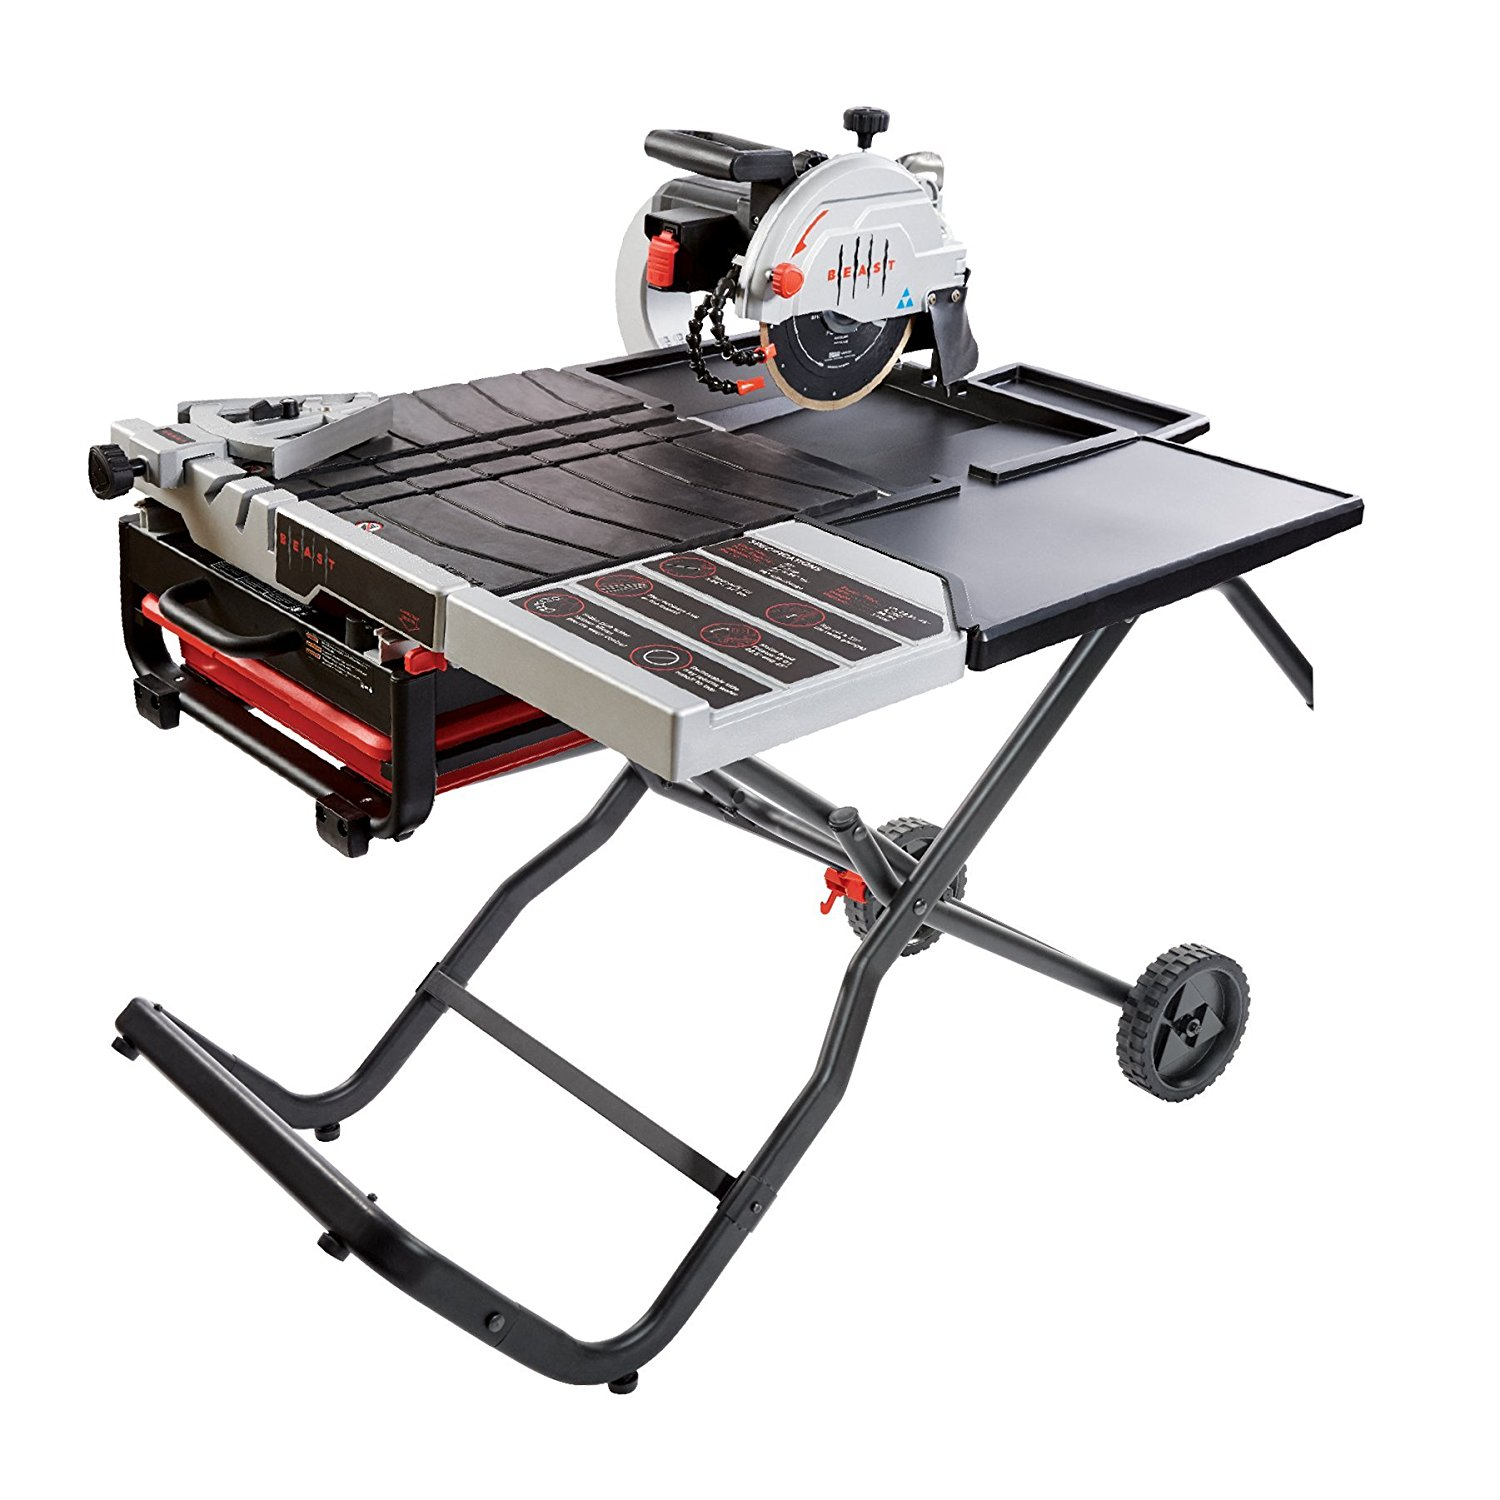 "Lackmond Beast Wet Tile Saw - 10"" Portable Jobsite Cutting Tool with Gravity Folding Stand & Accessories - BEAST10PKIT"